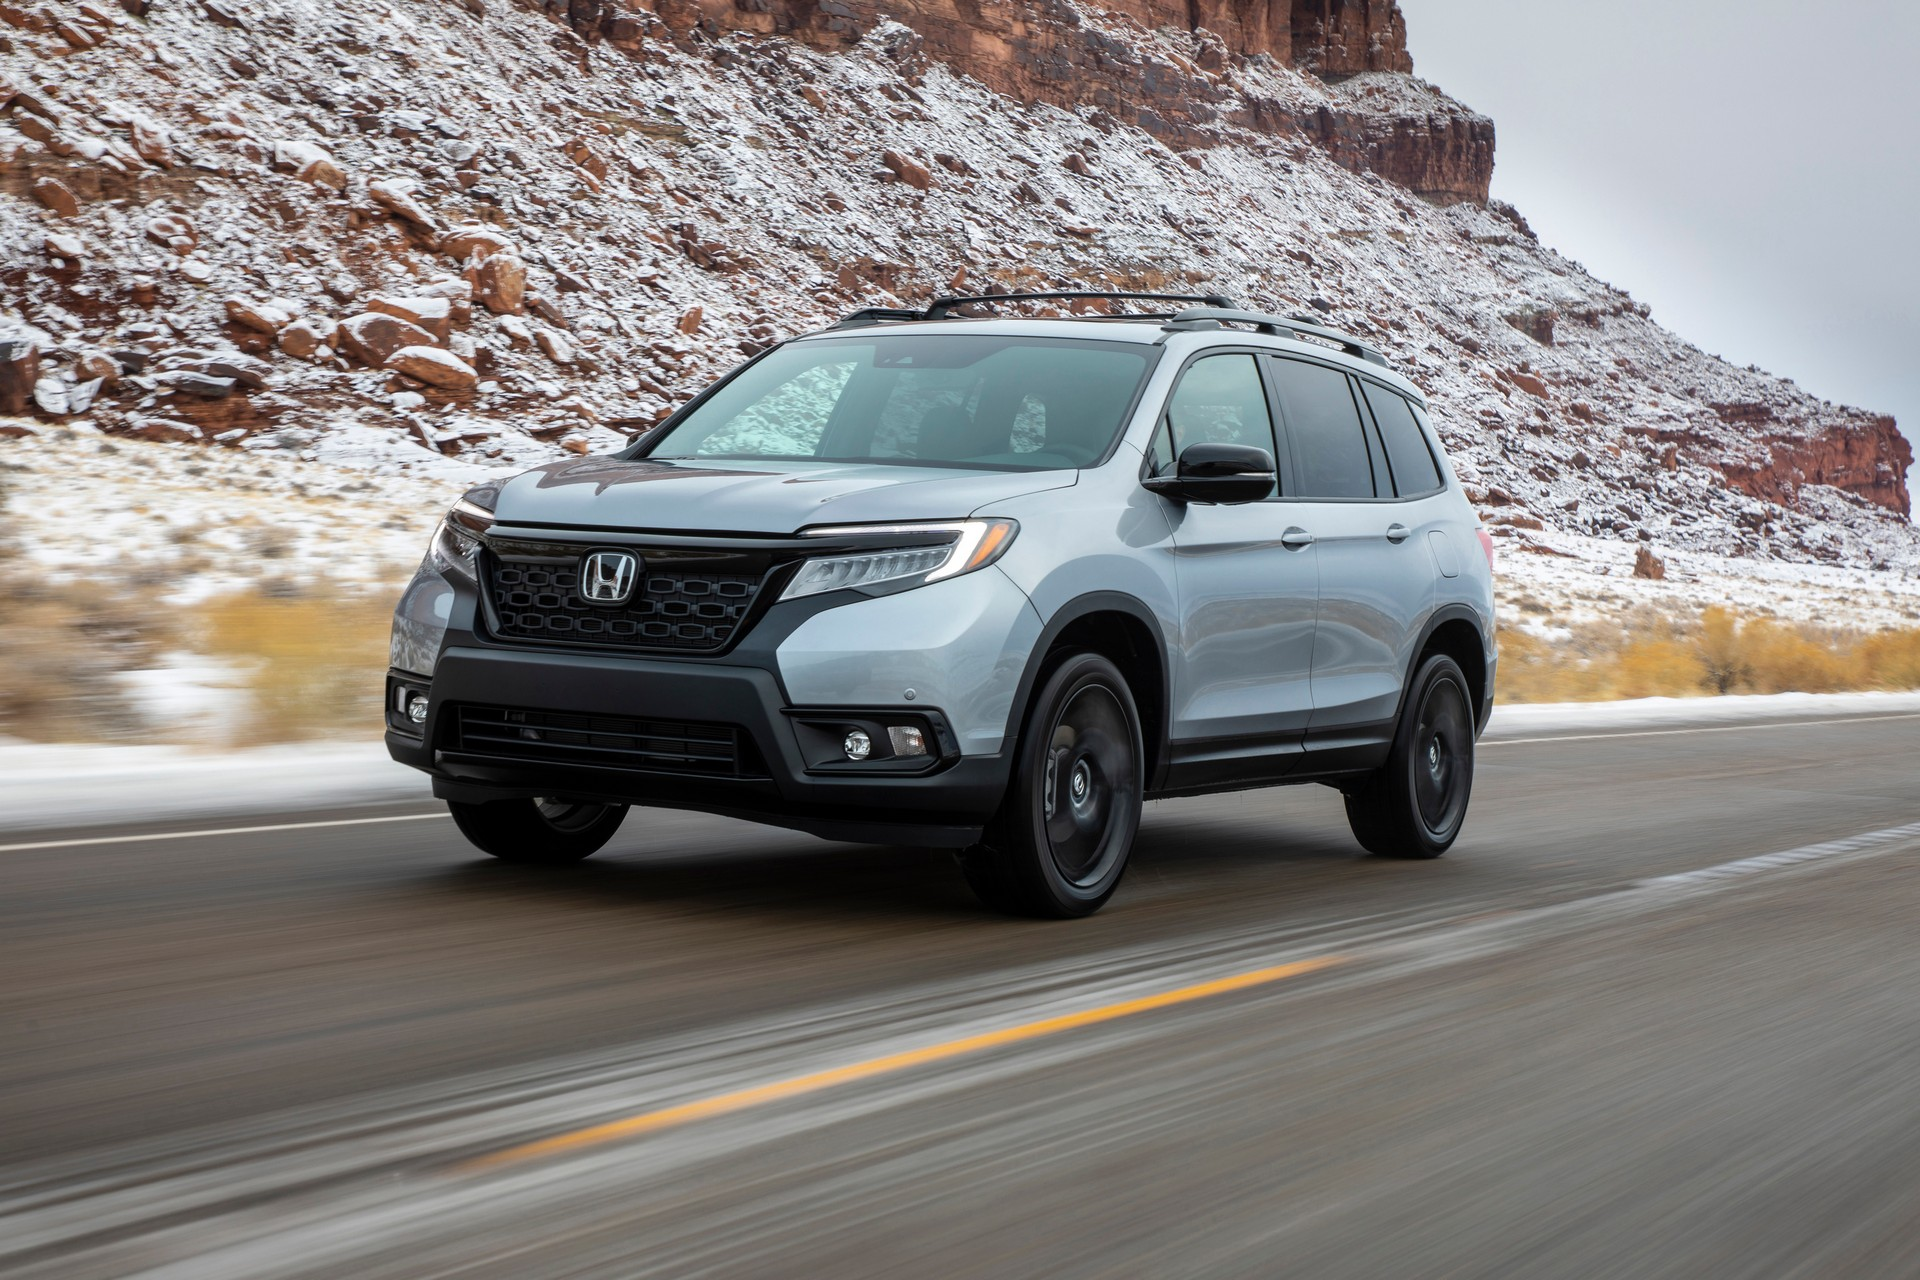 2021-honda-passport-11.jpg